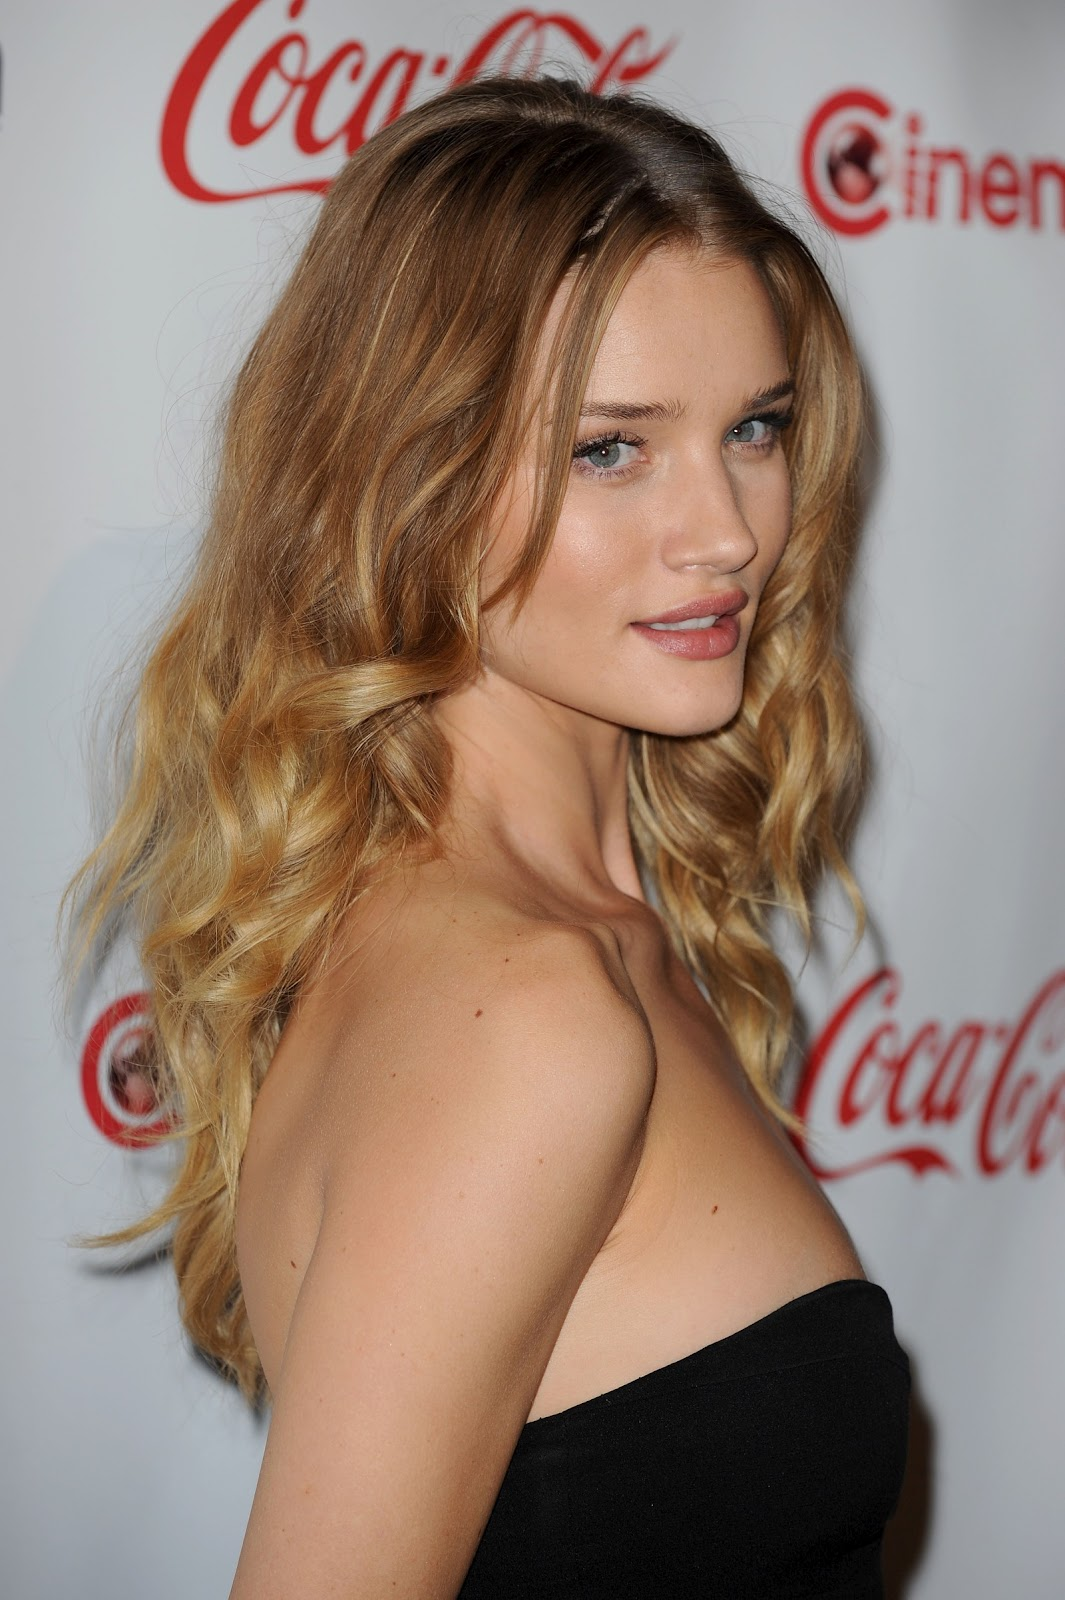 Rosie Huntington Whiteley – Cinemacon 2011 Awards